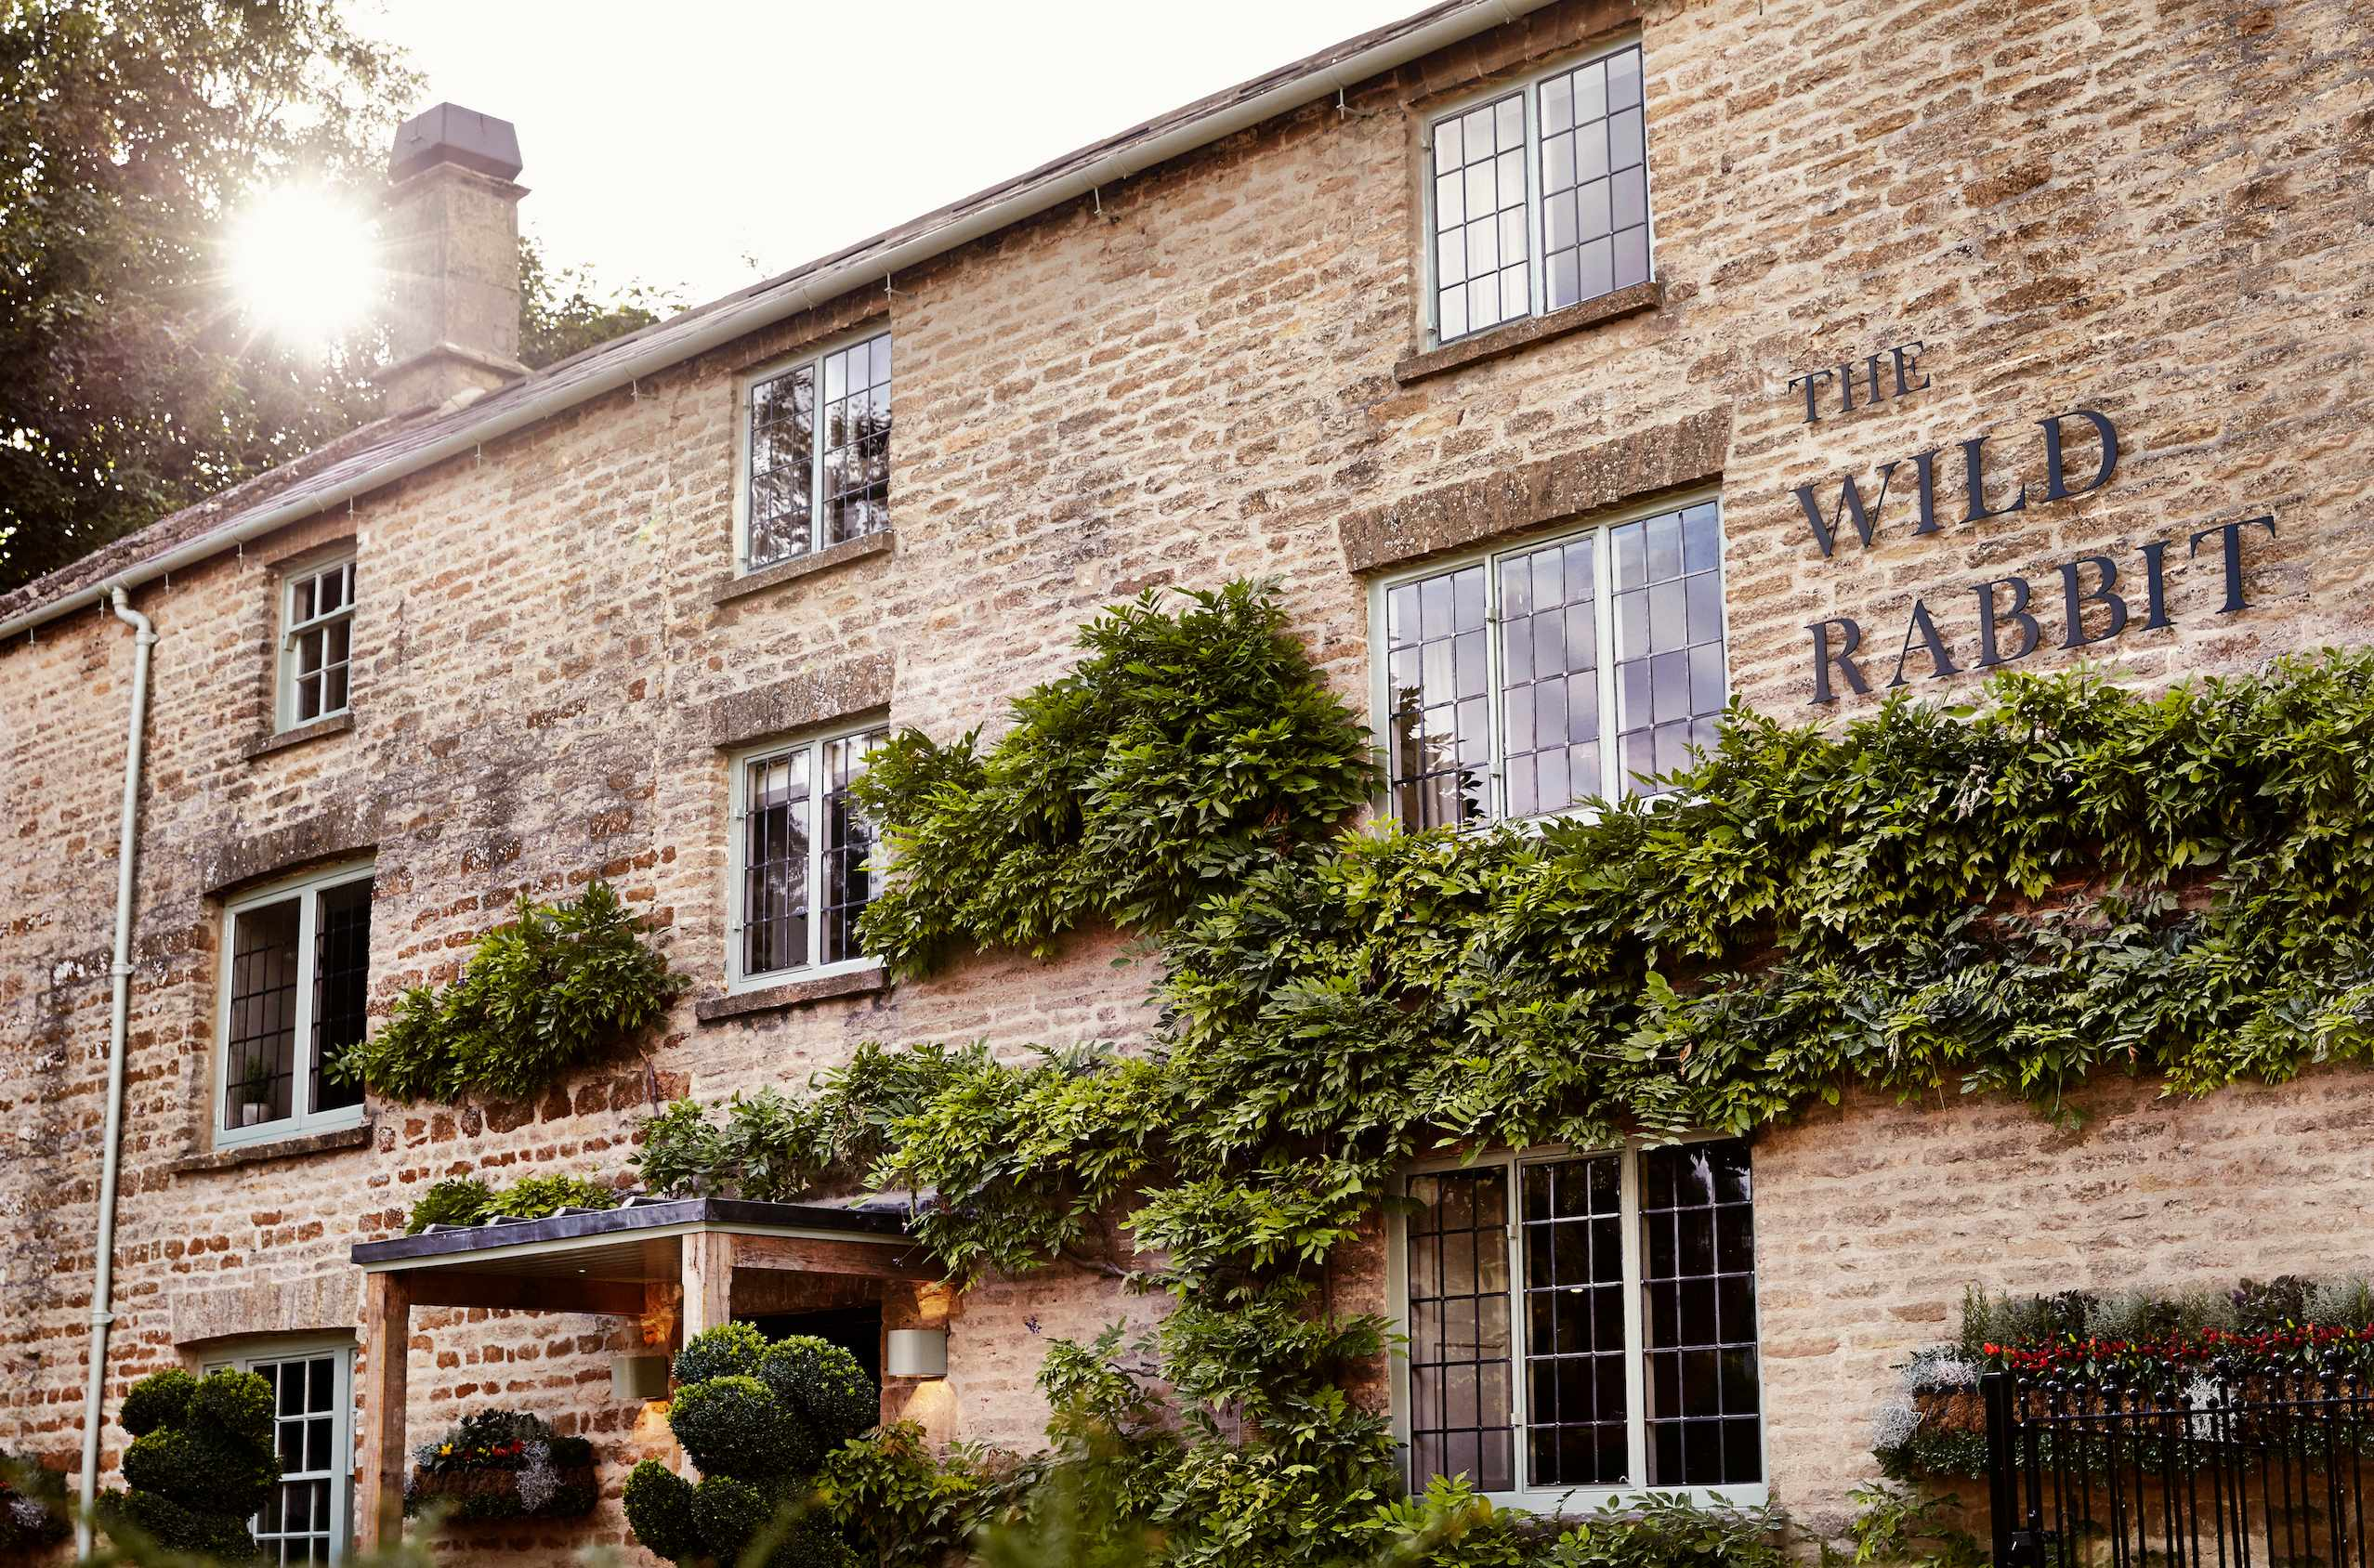 The Wild Rabbit exterior –a Cotswold stone building with greenery spread across it